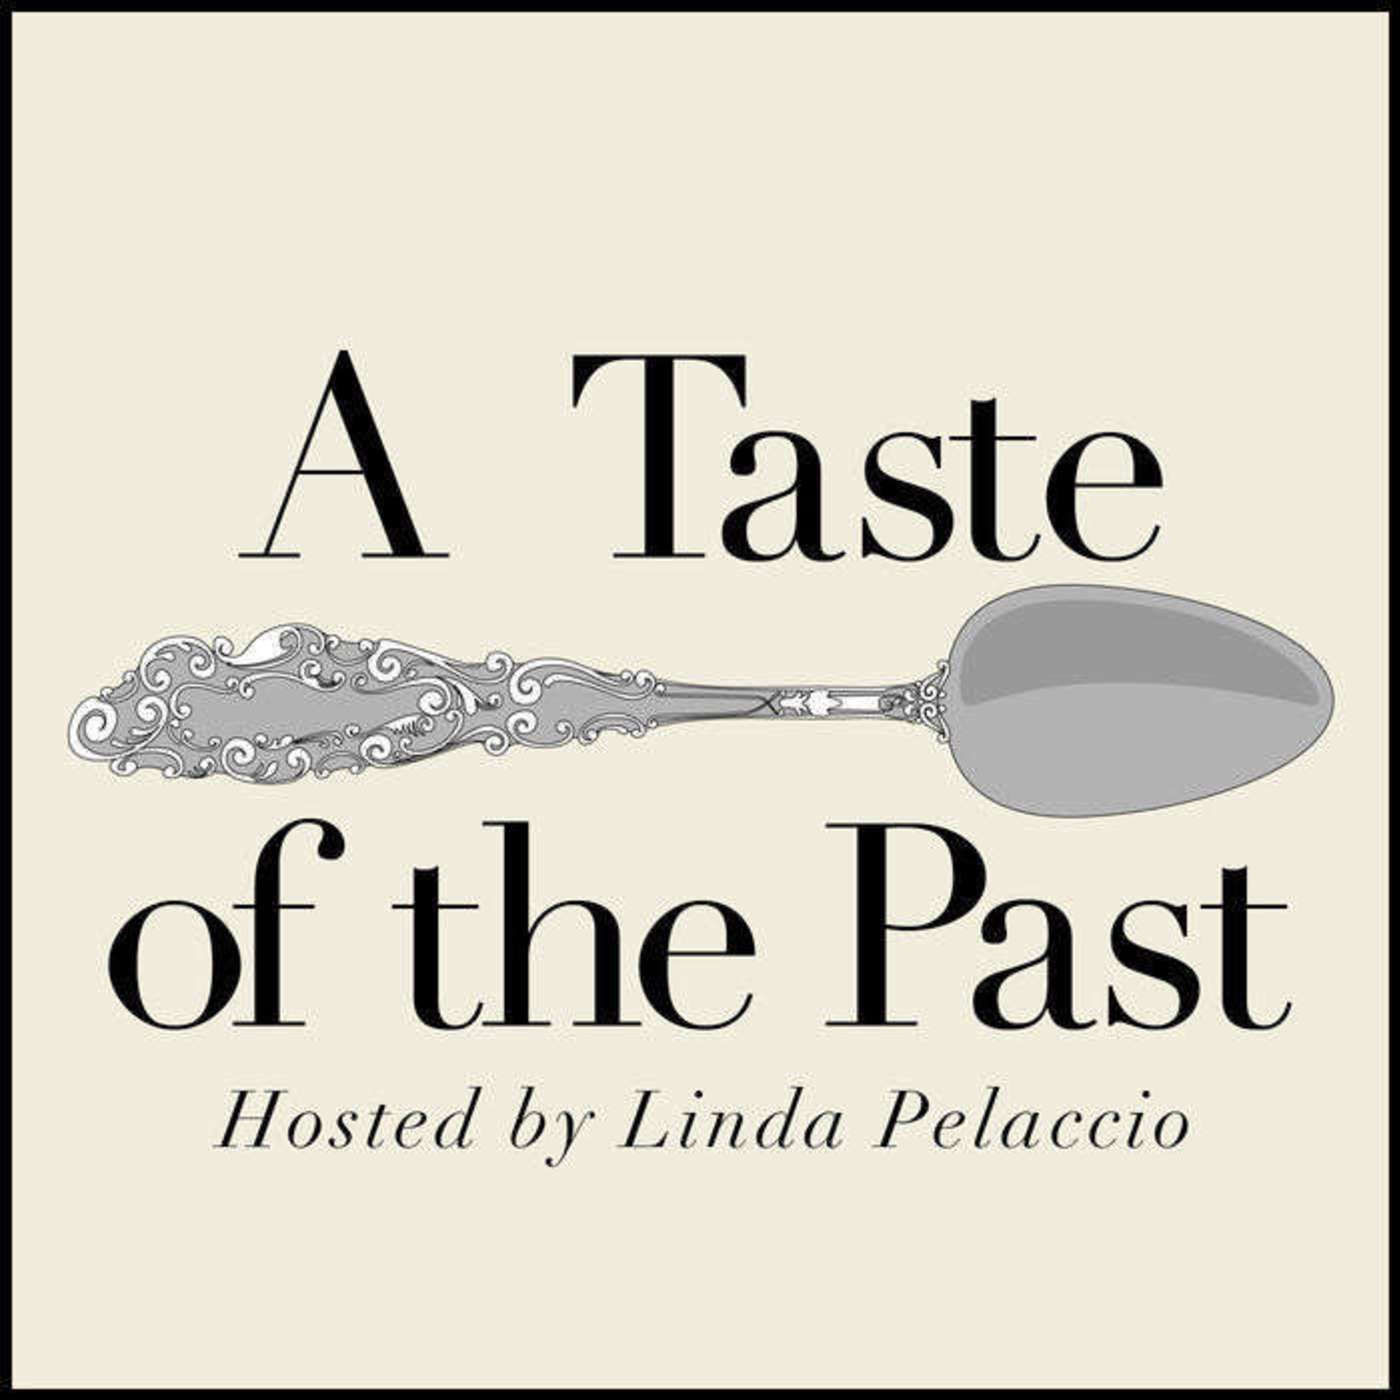 Episode 42: Heritage of Chinese Cooking: The Wok